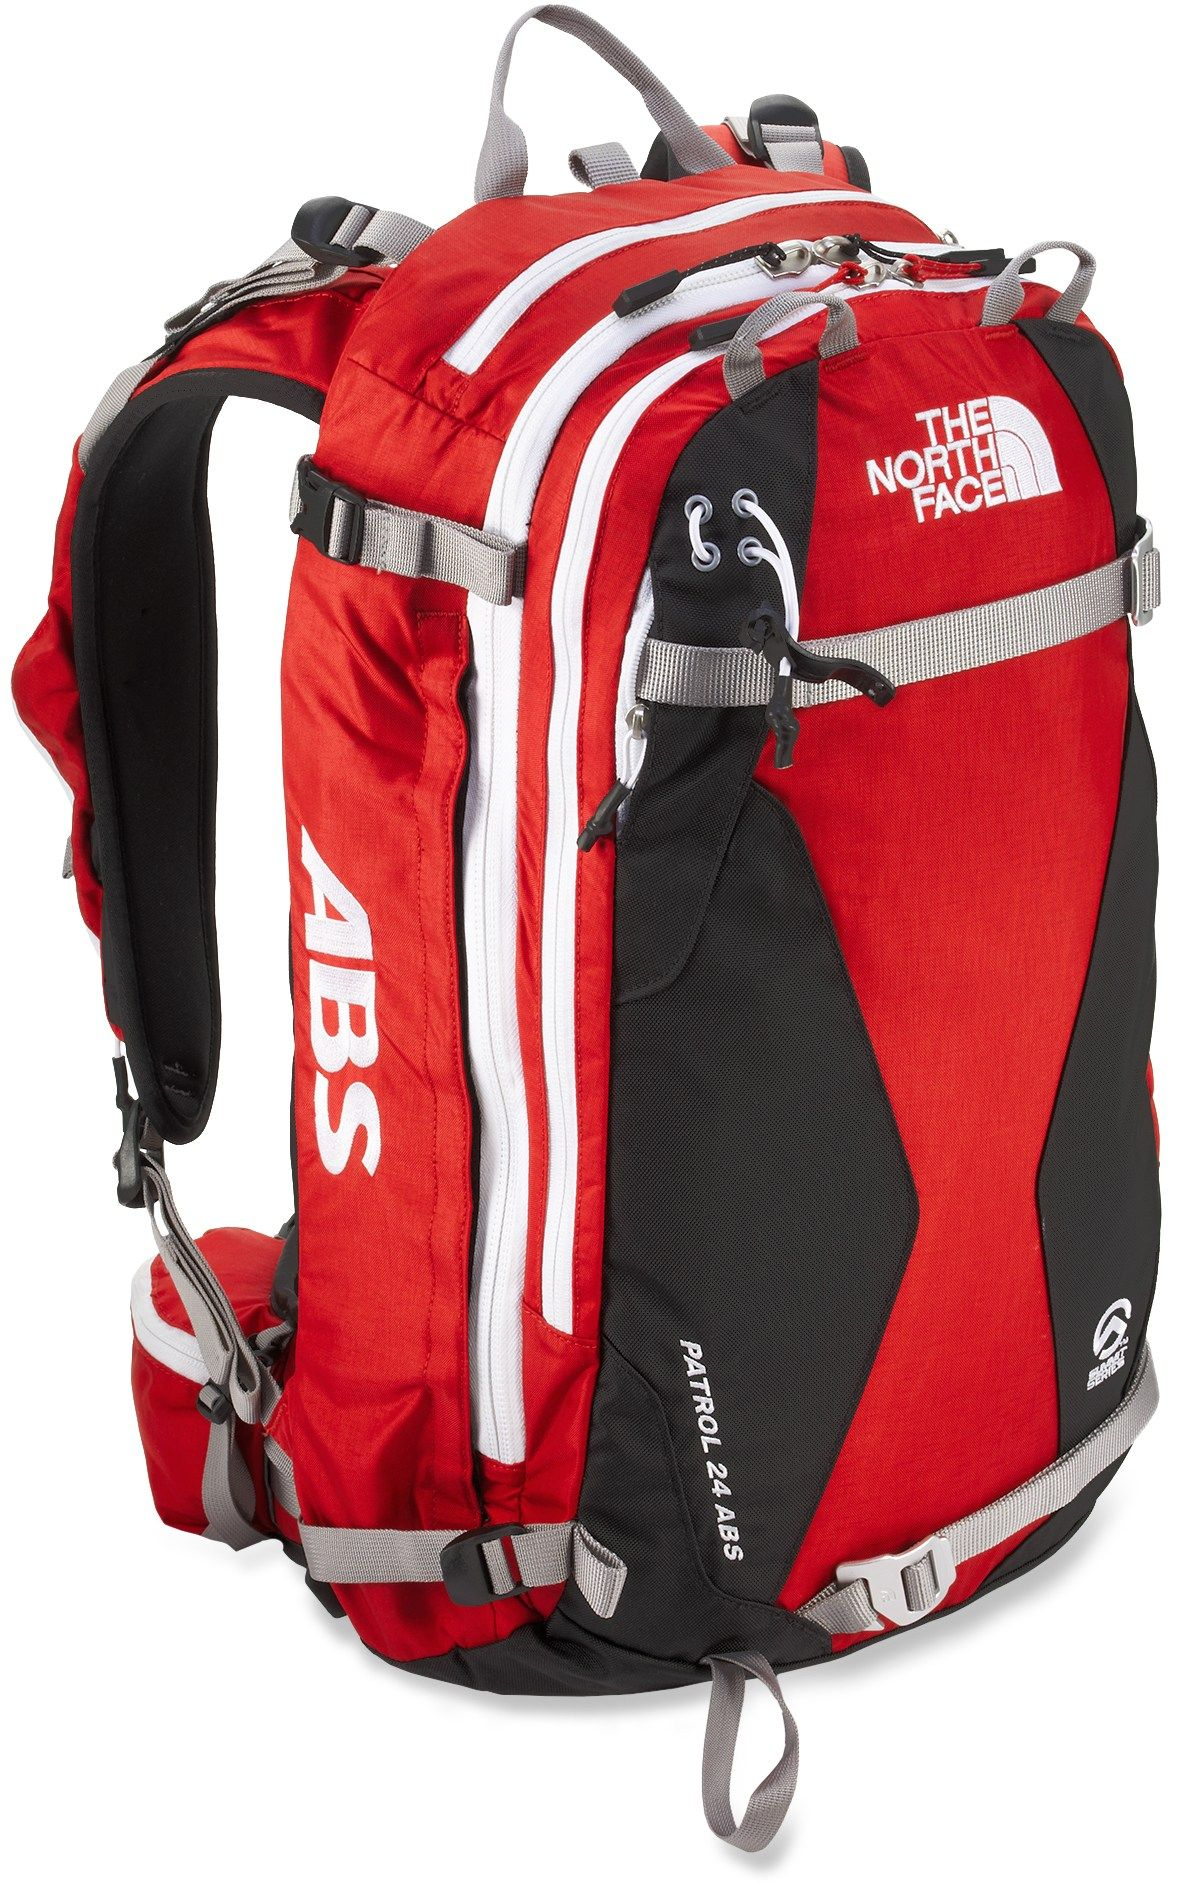 1290bd6daf18 The North Face Patrol 24 ABS Avalanche Airbag Pack - Free Shipping at REI .com